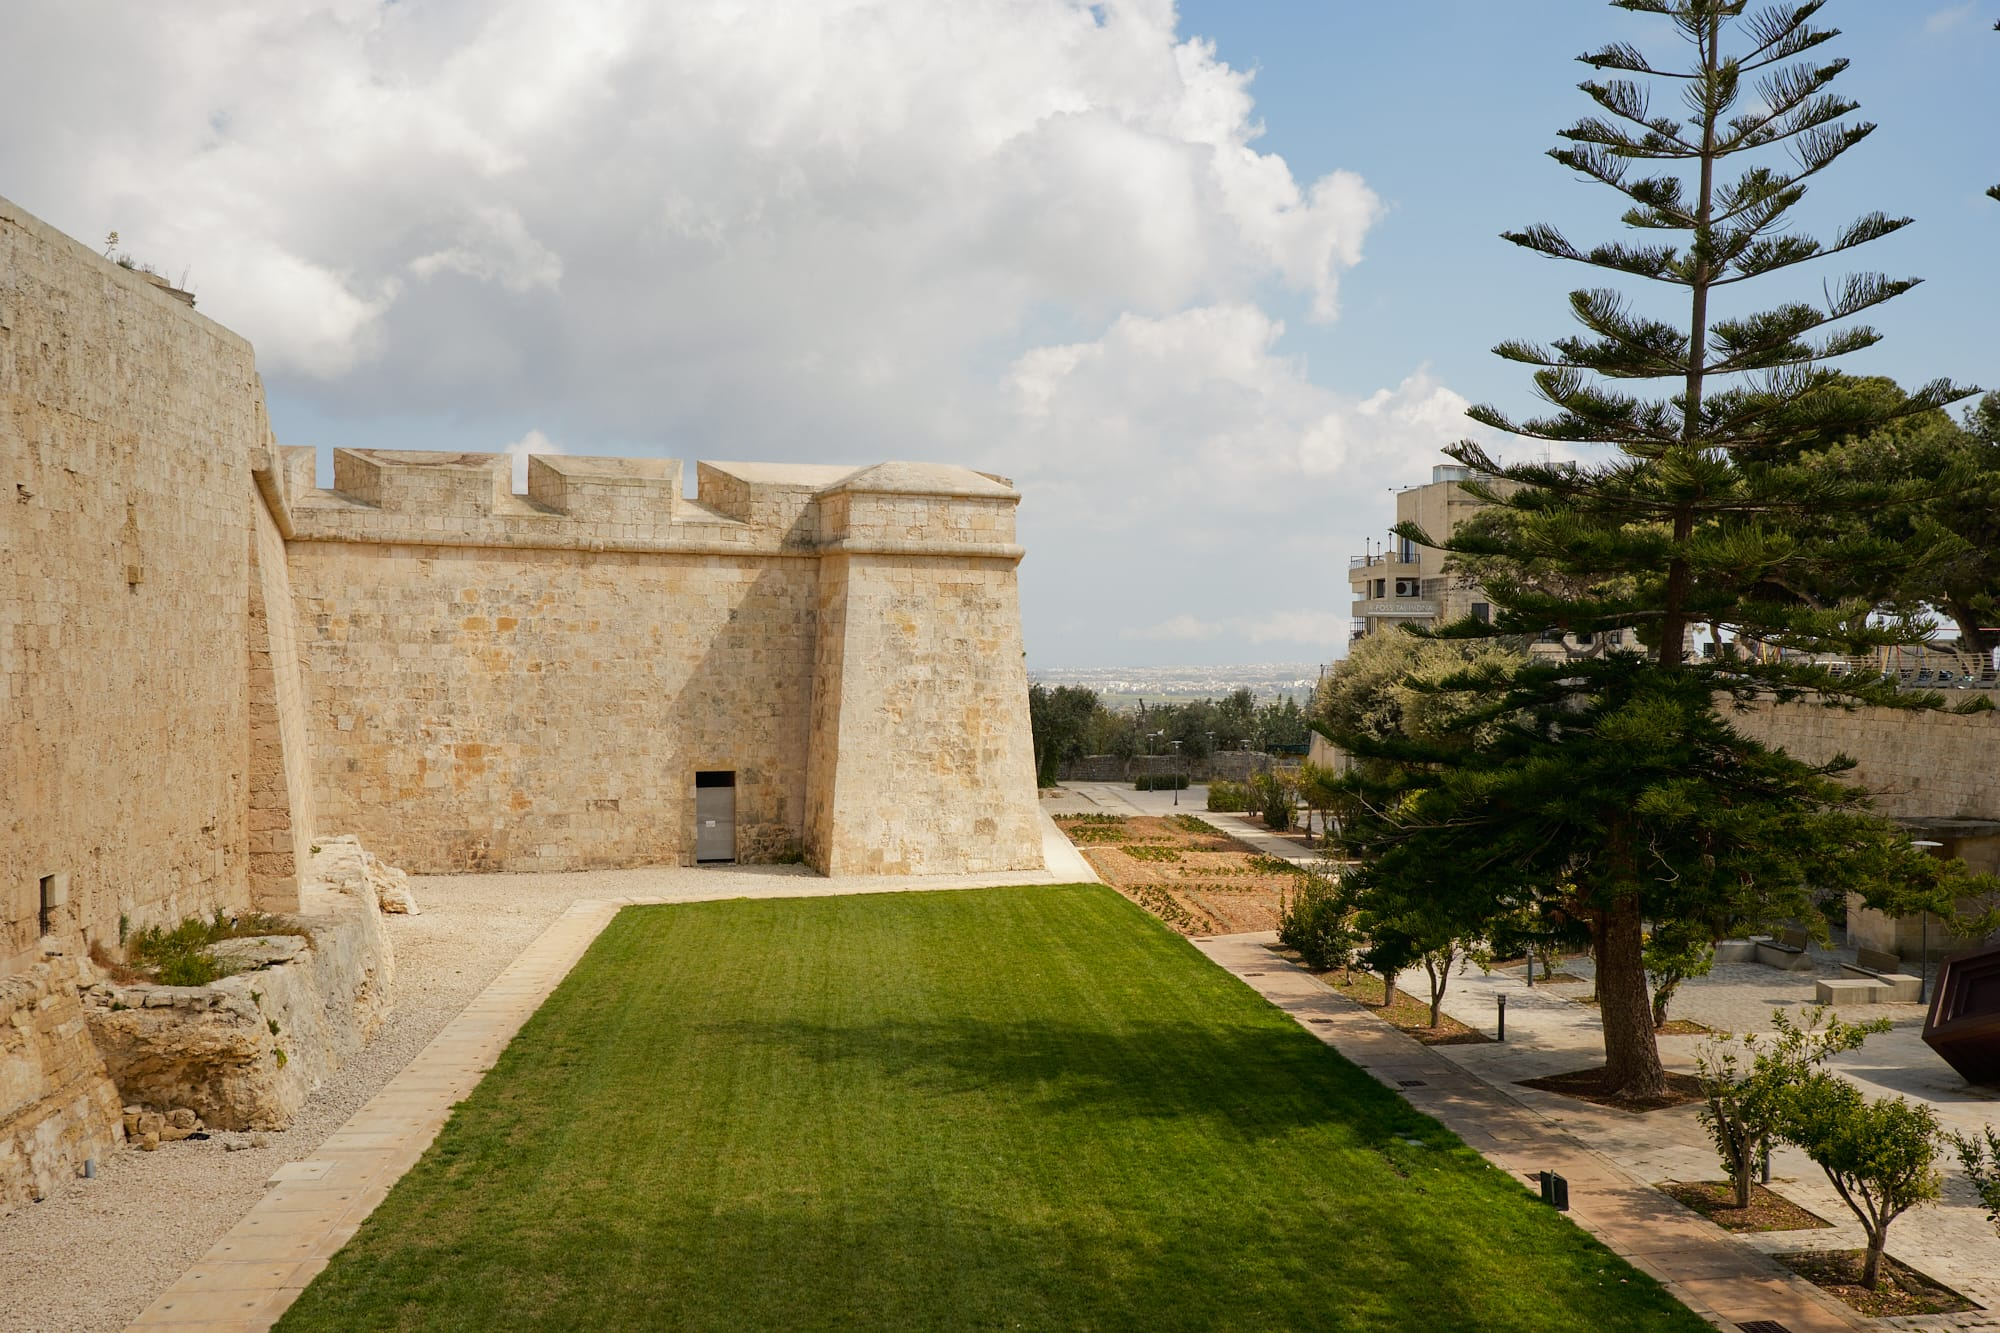 outer wall of Mdina